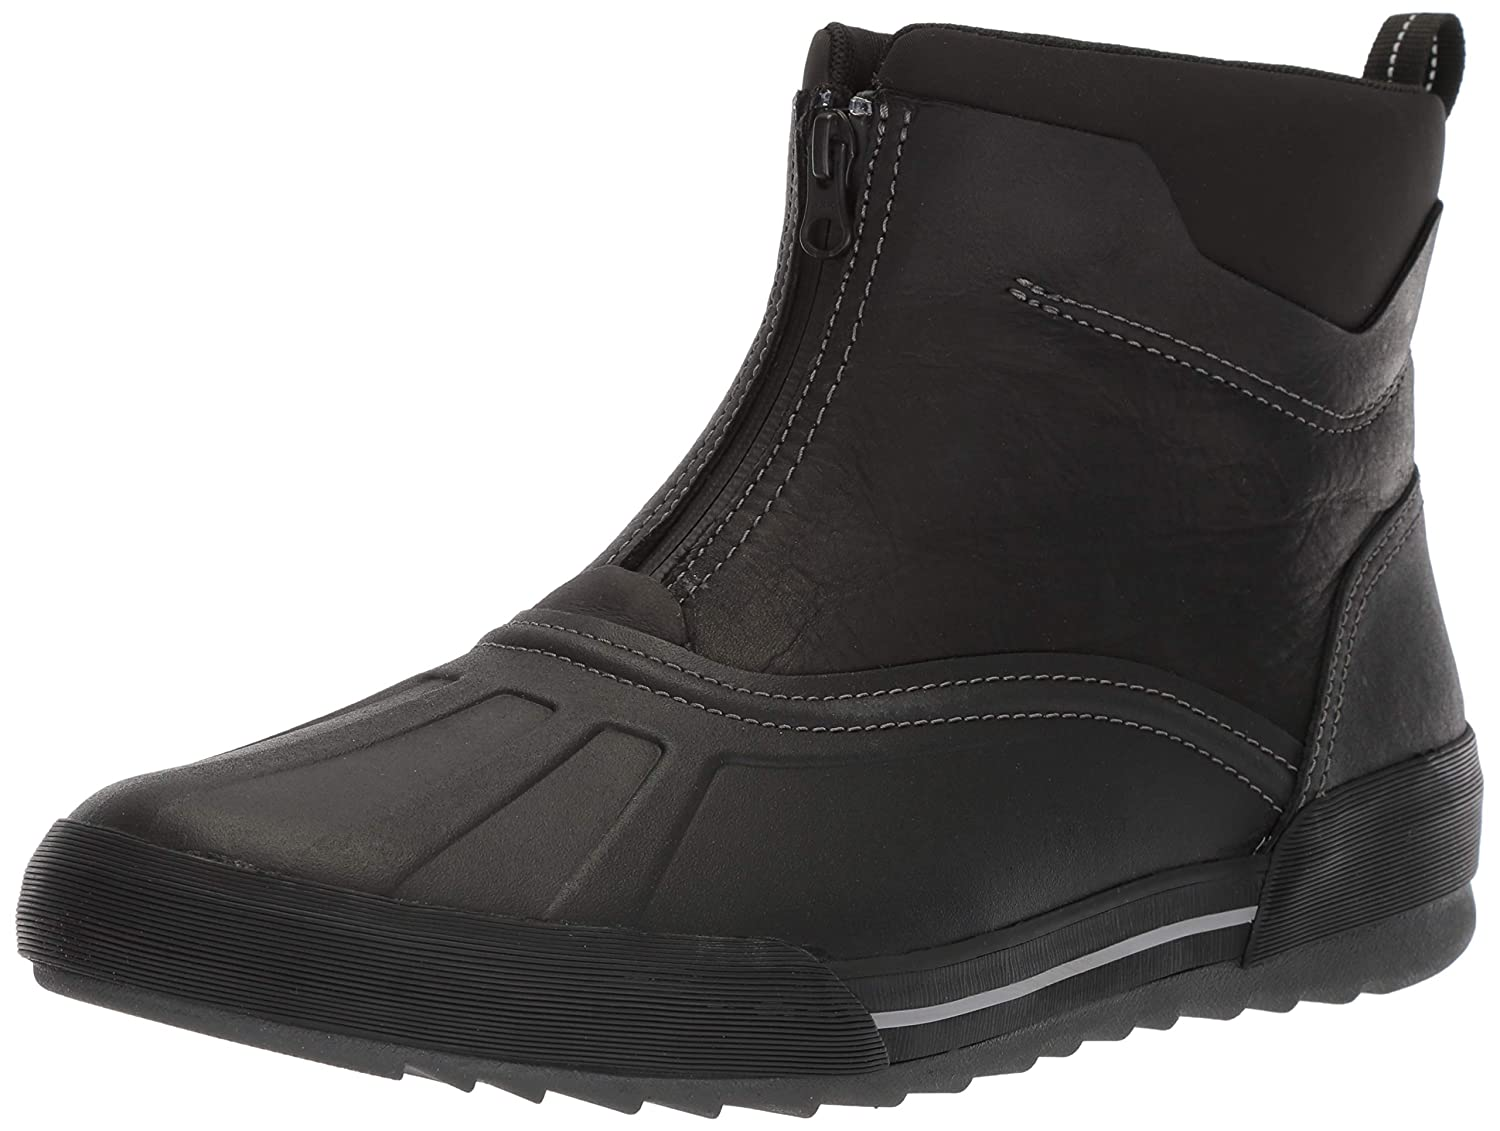 Black Leather Clarks Men's Bowman Top Ankle Boot